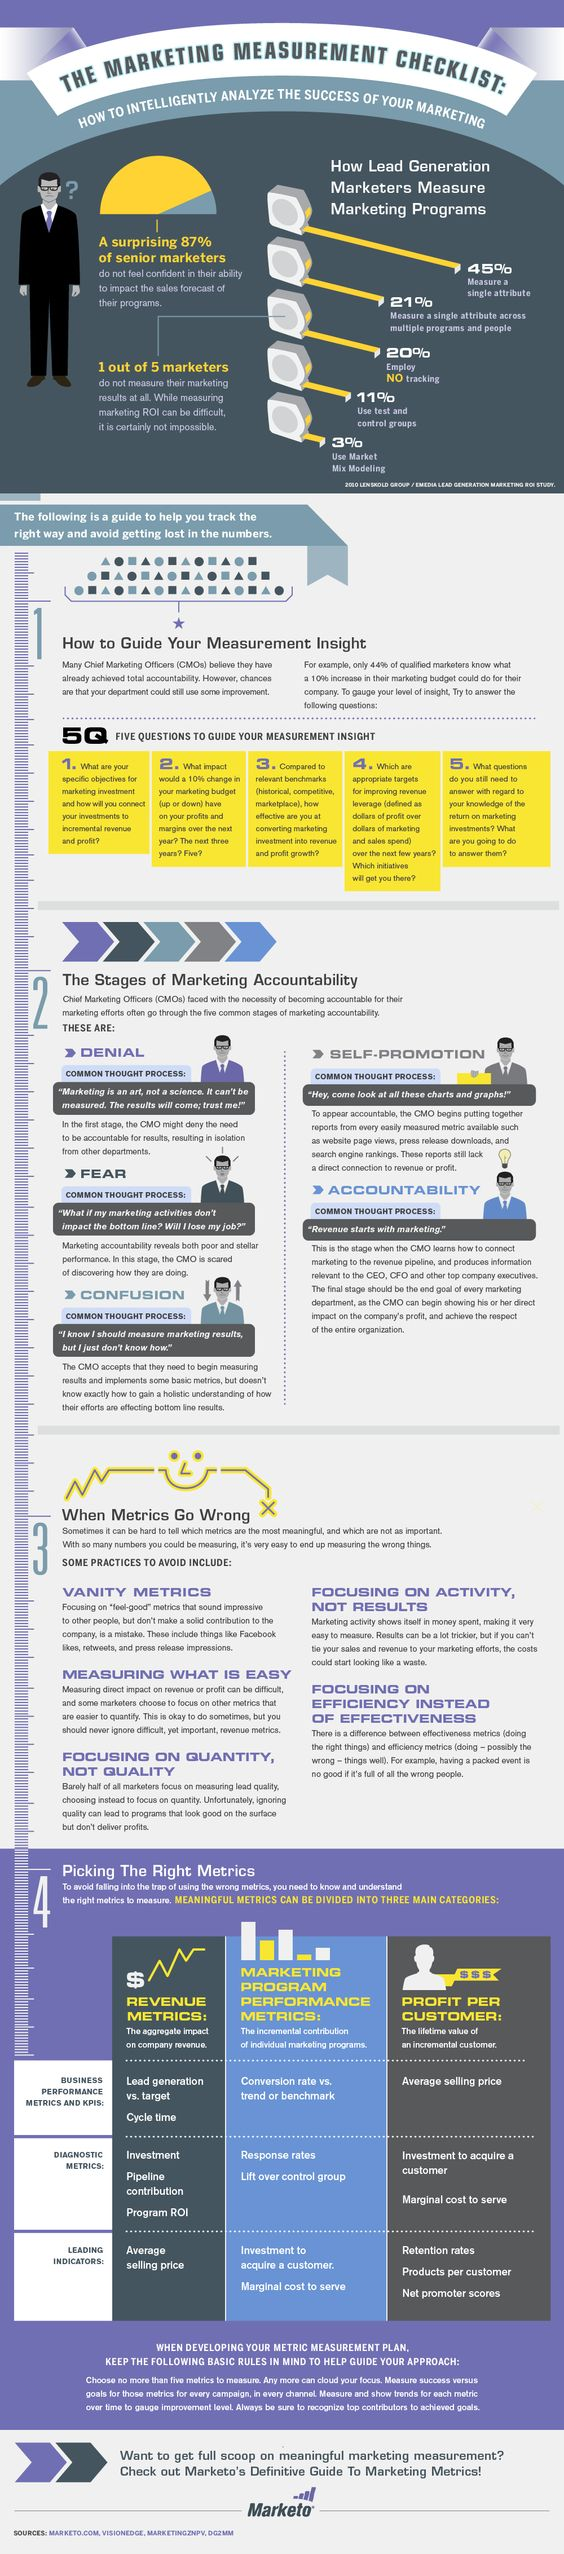 marketing-measurement-checklist-infographic